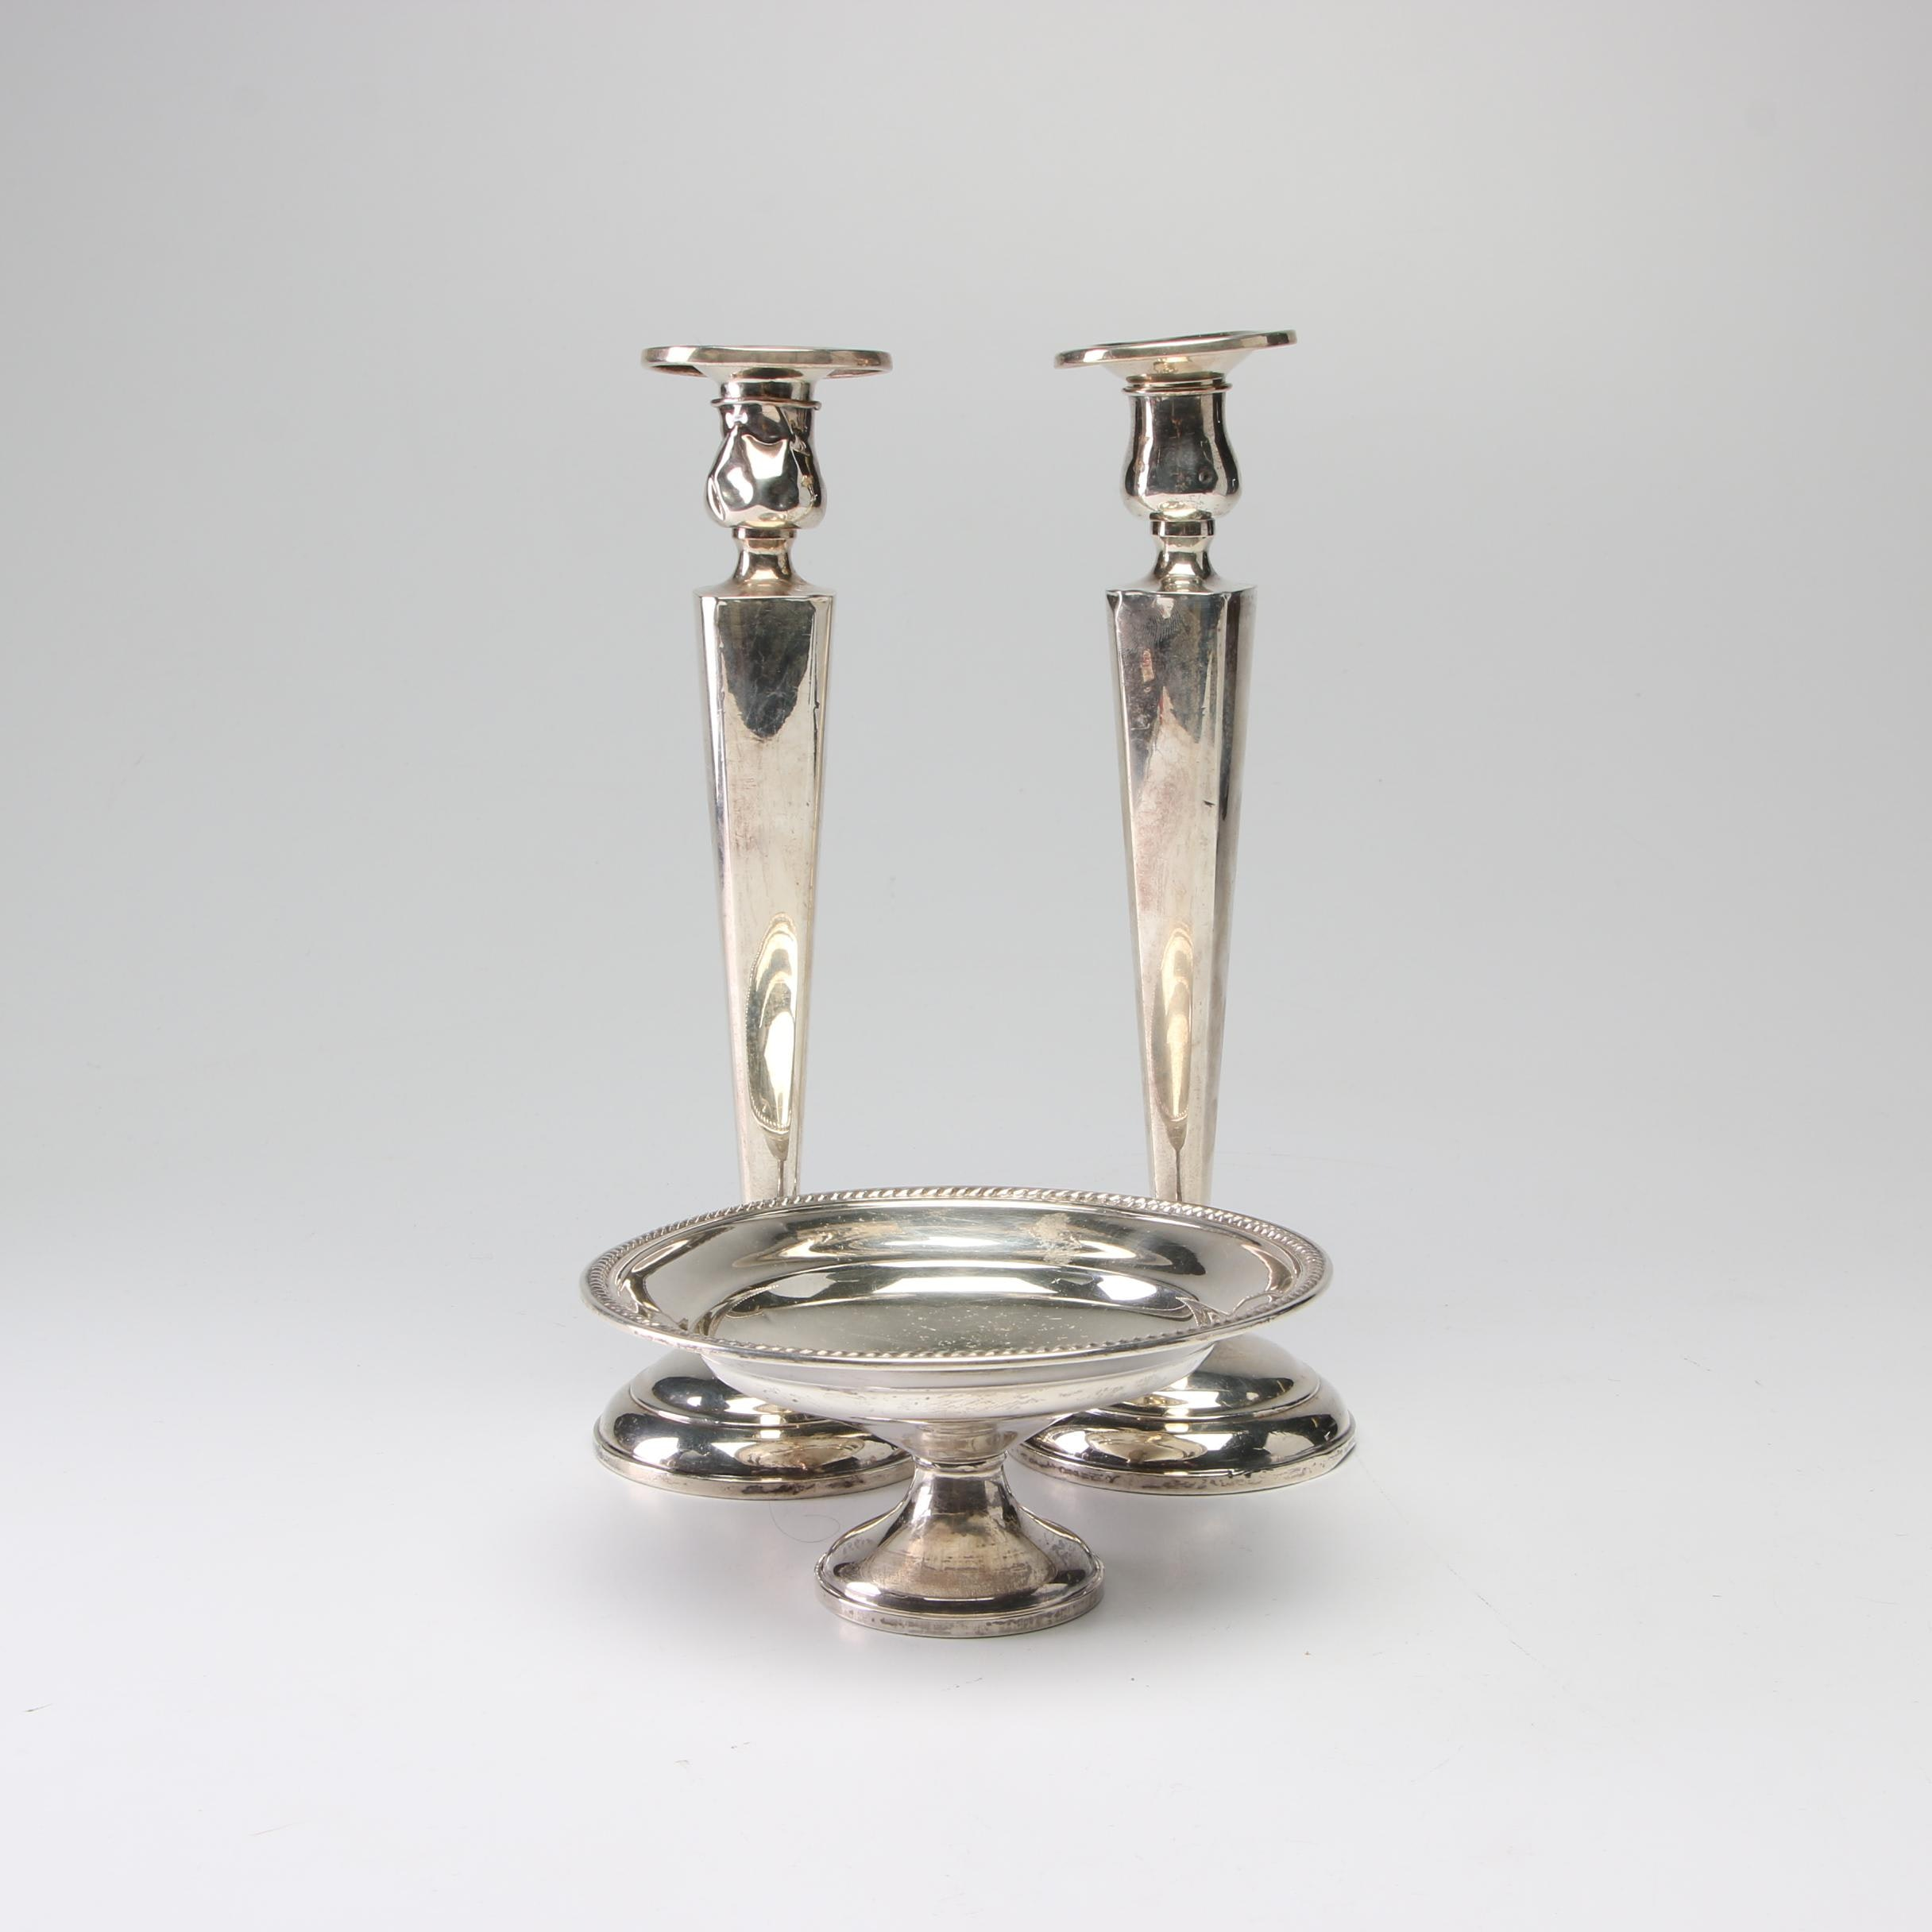 Sterling Silver Candle Holders with Tray